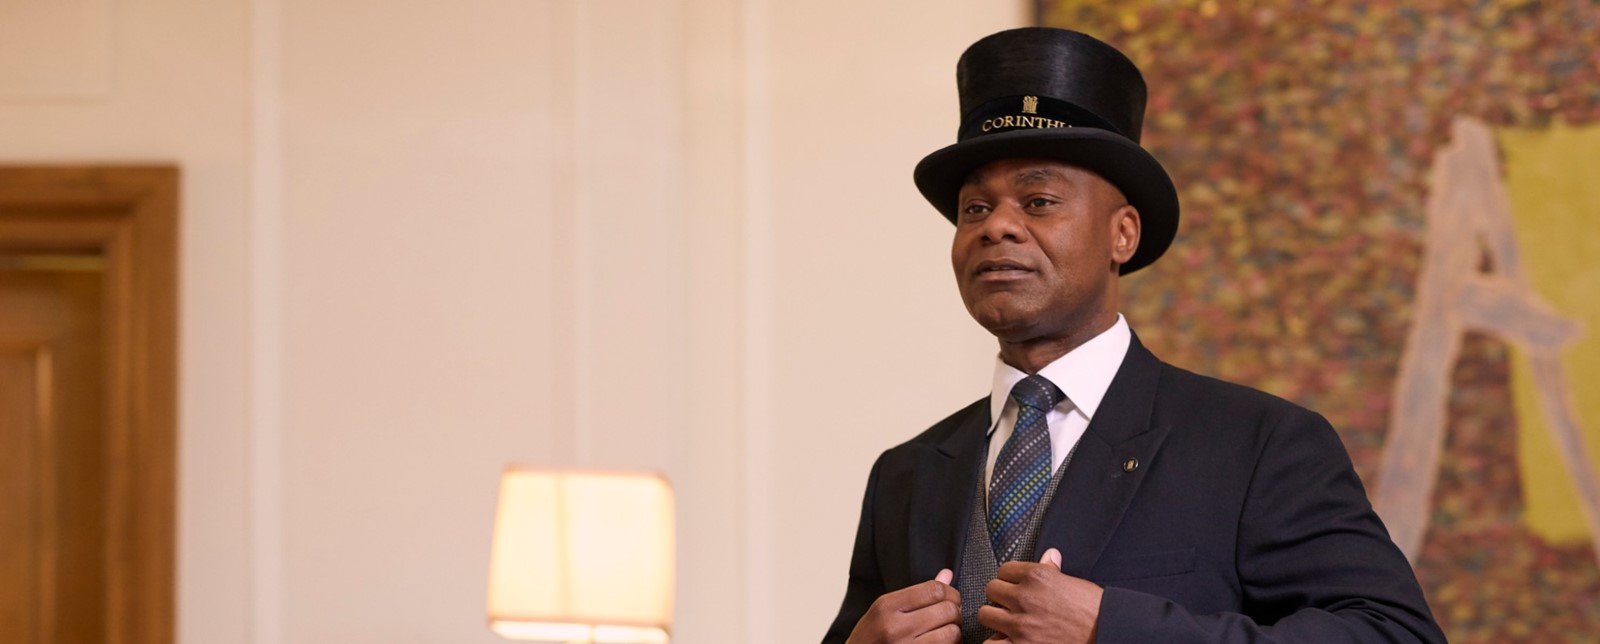 corinthia london doorman